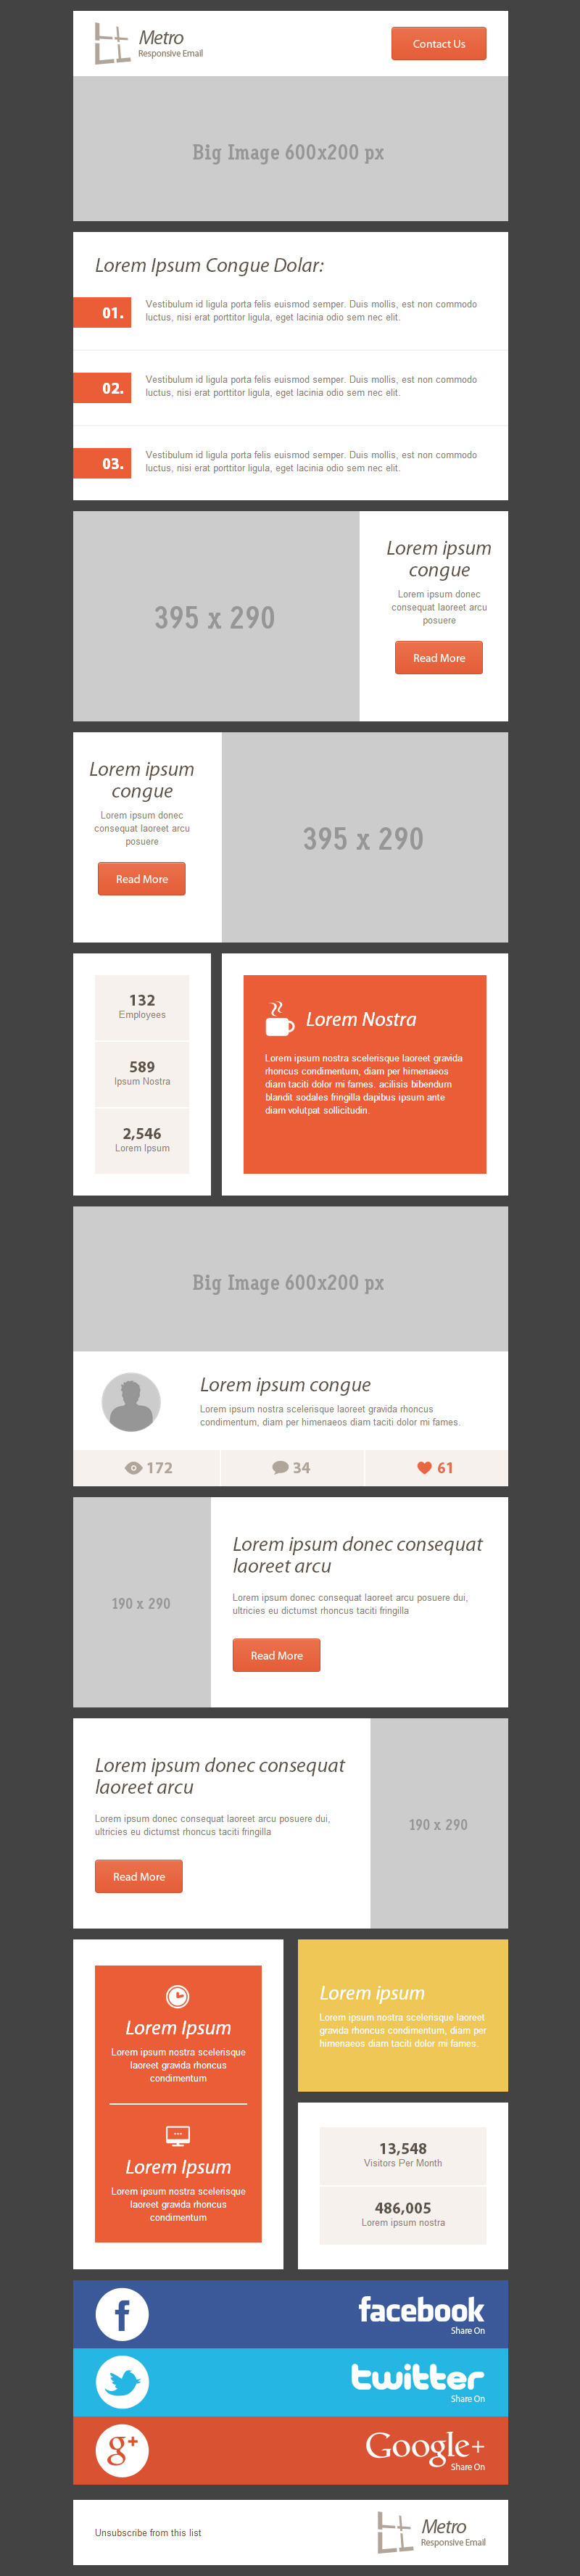 54 General Metro Email Templates - Dark / Light